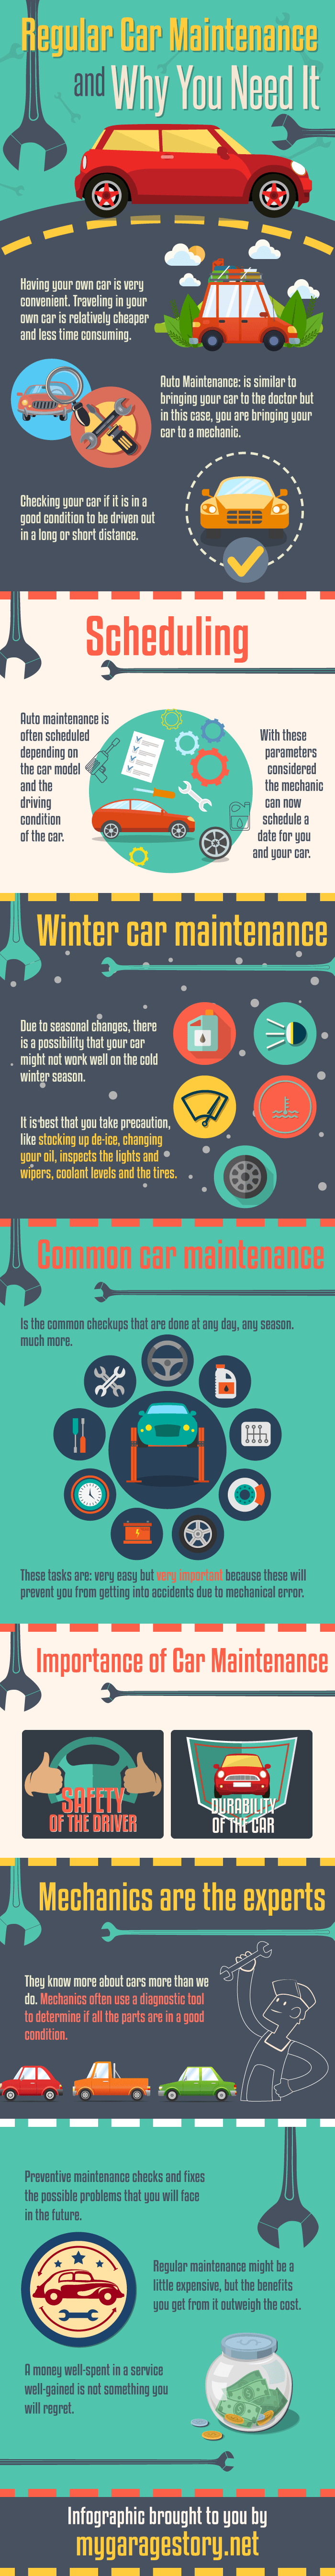 Regular Car Maintenance And Why You Need It infographic